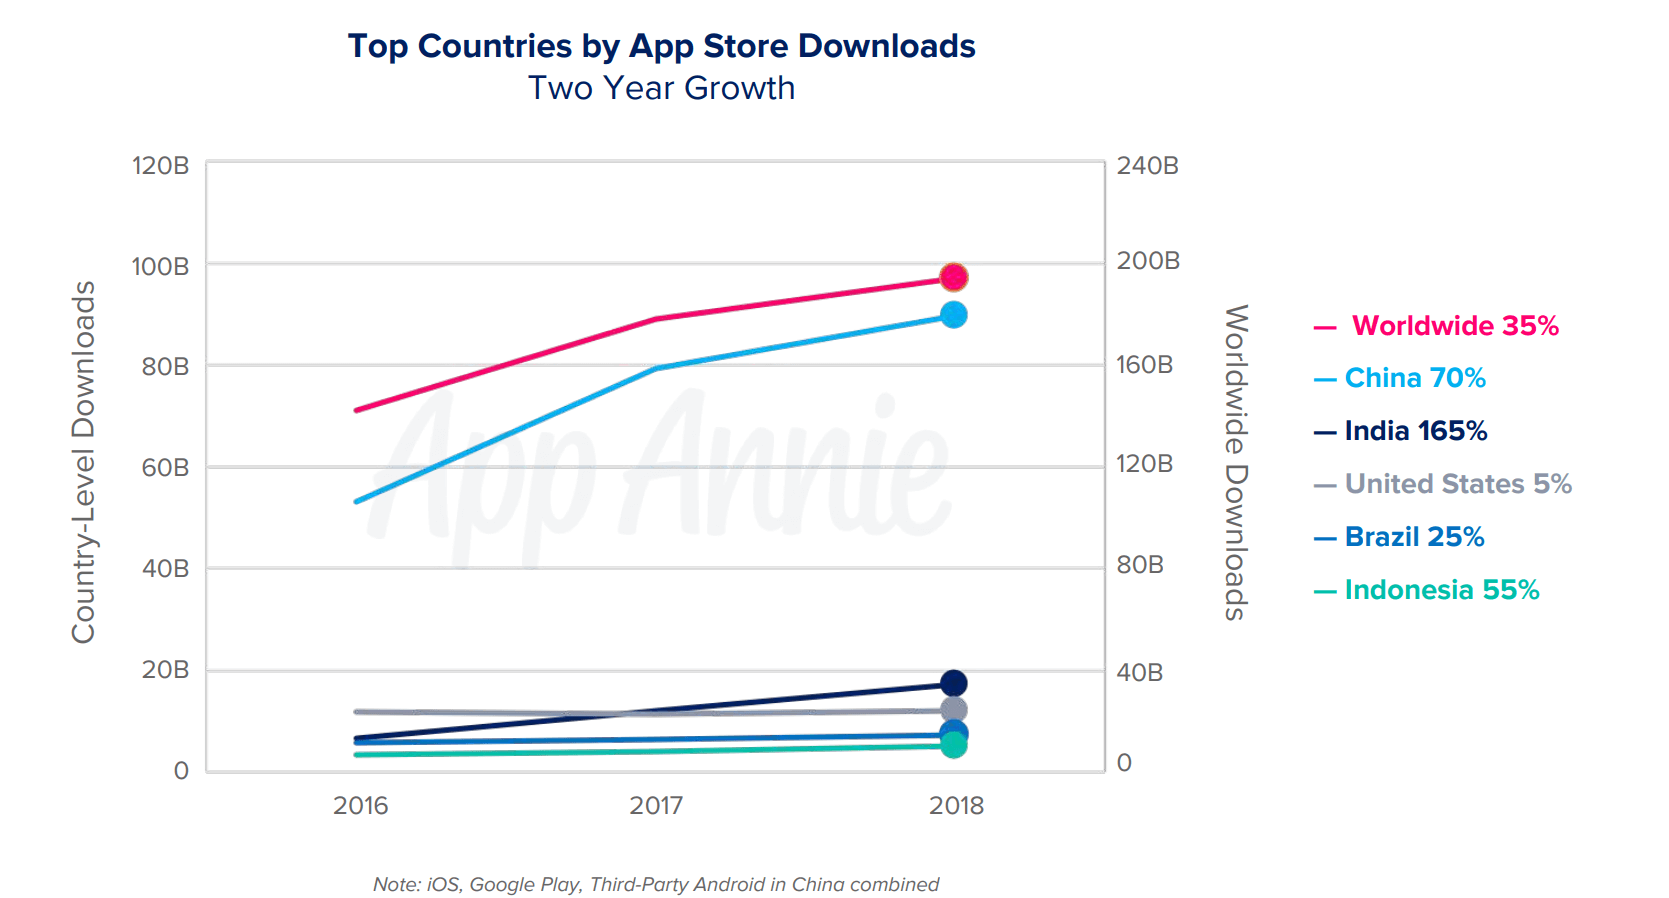 Top Countries by App Store Downloads